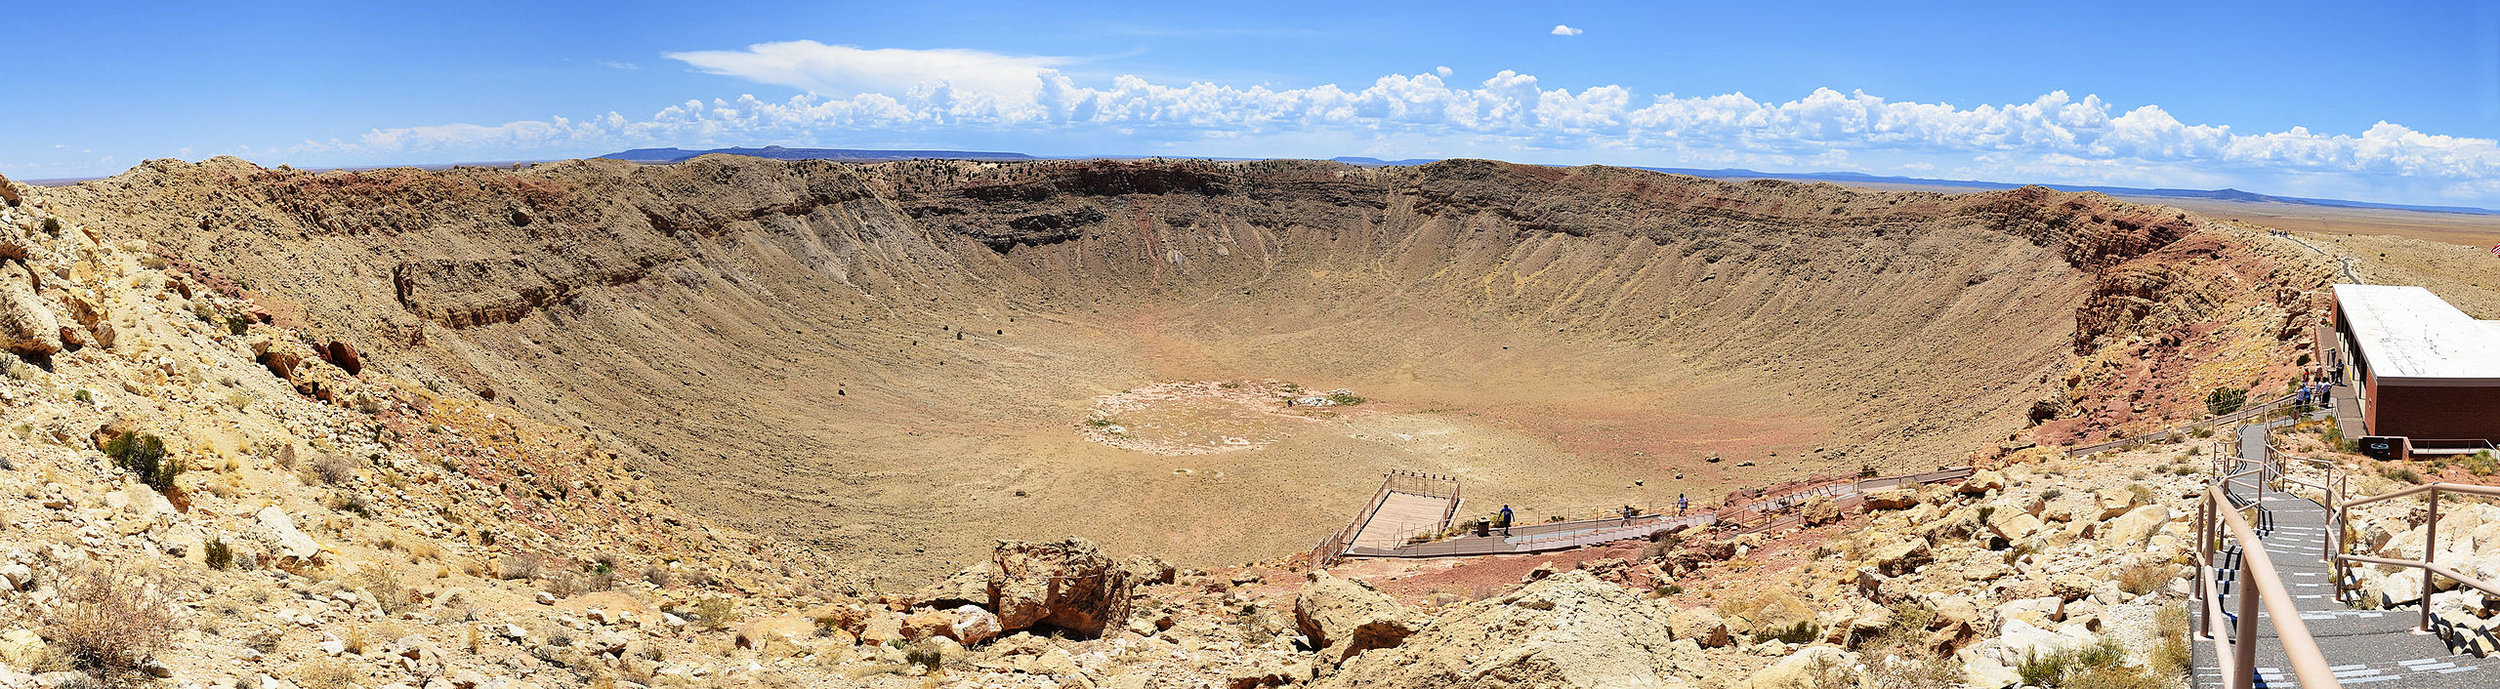 This is a stitched panoramic image of Meteor (or Barringer) Crater located near Winslow, Arizona, 2012 07 11. Image credit: wikimedia user Tsaiproject, CC BY-SA 3.0